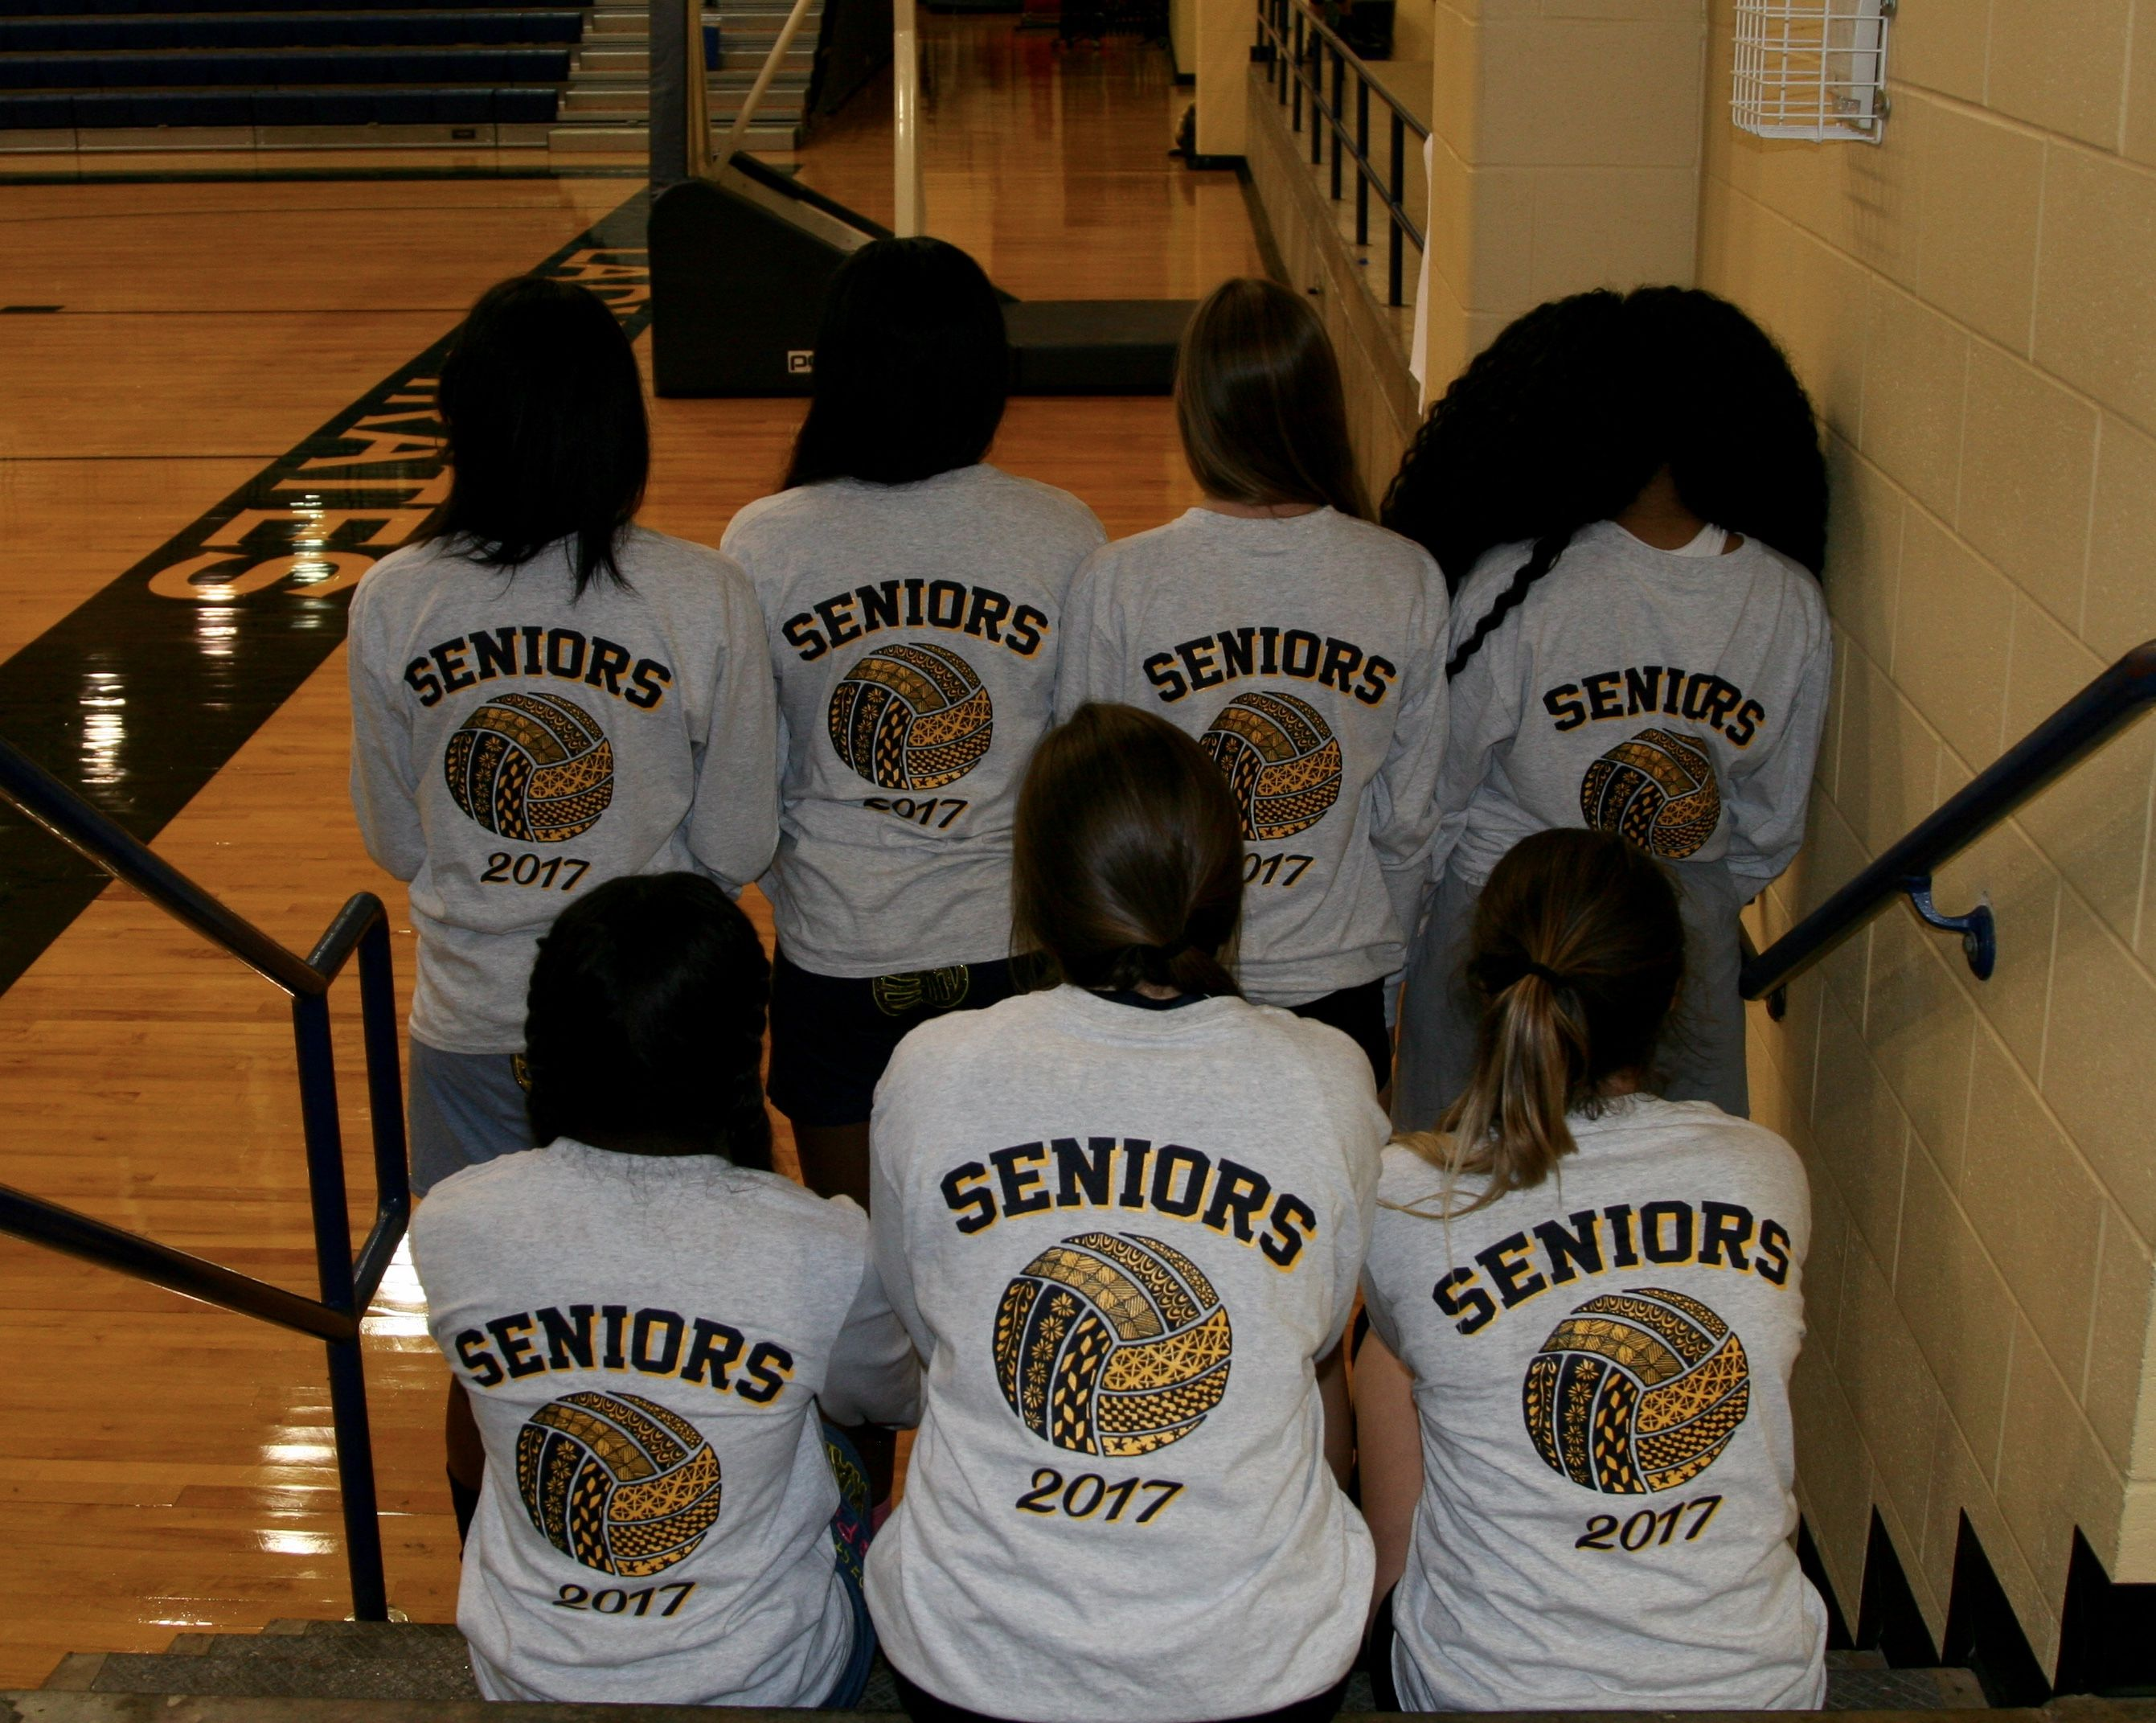 Senior Volleyball T Shirts With Images Volleyball Senior Night Volleyball Senior Night Gifts Volleyball Senior Gifts